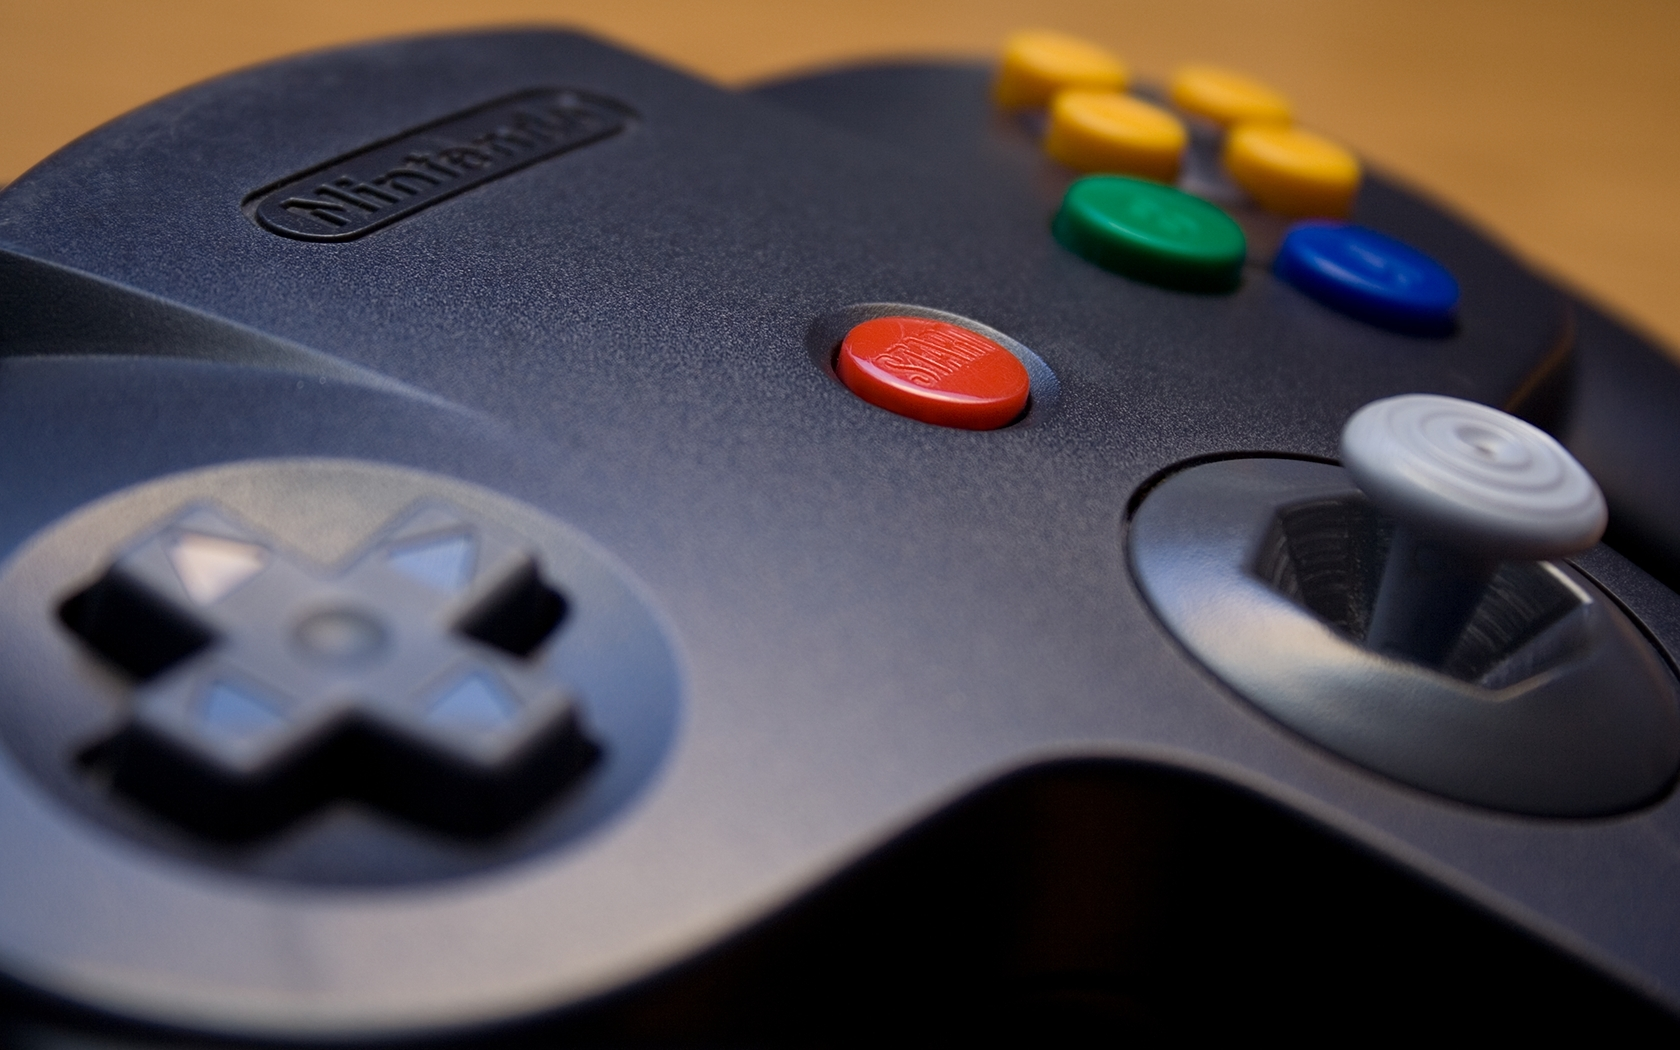 The Nintendo 64 is old enough to legally consume alcohol today in the US screenshot